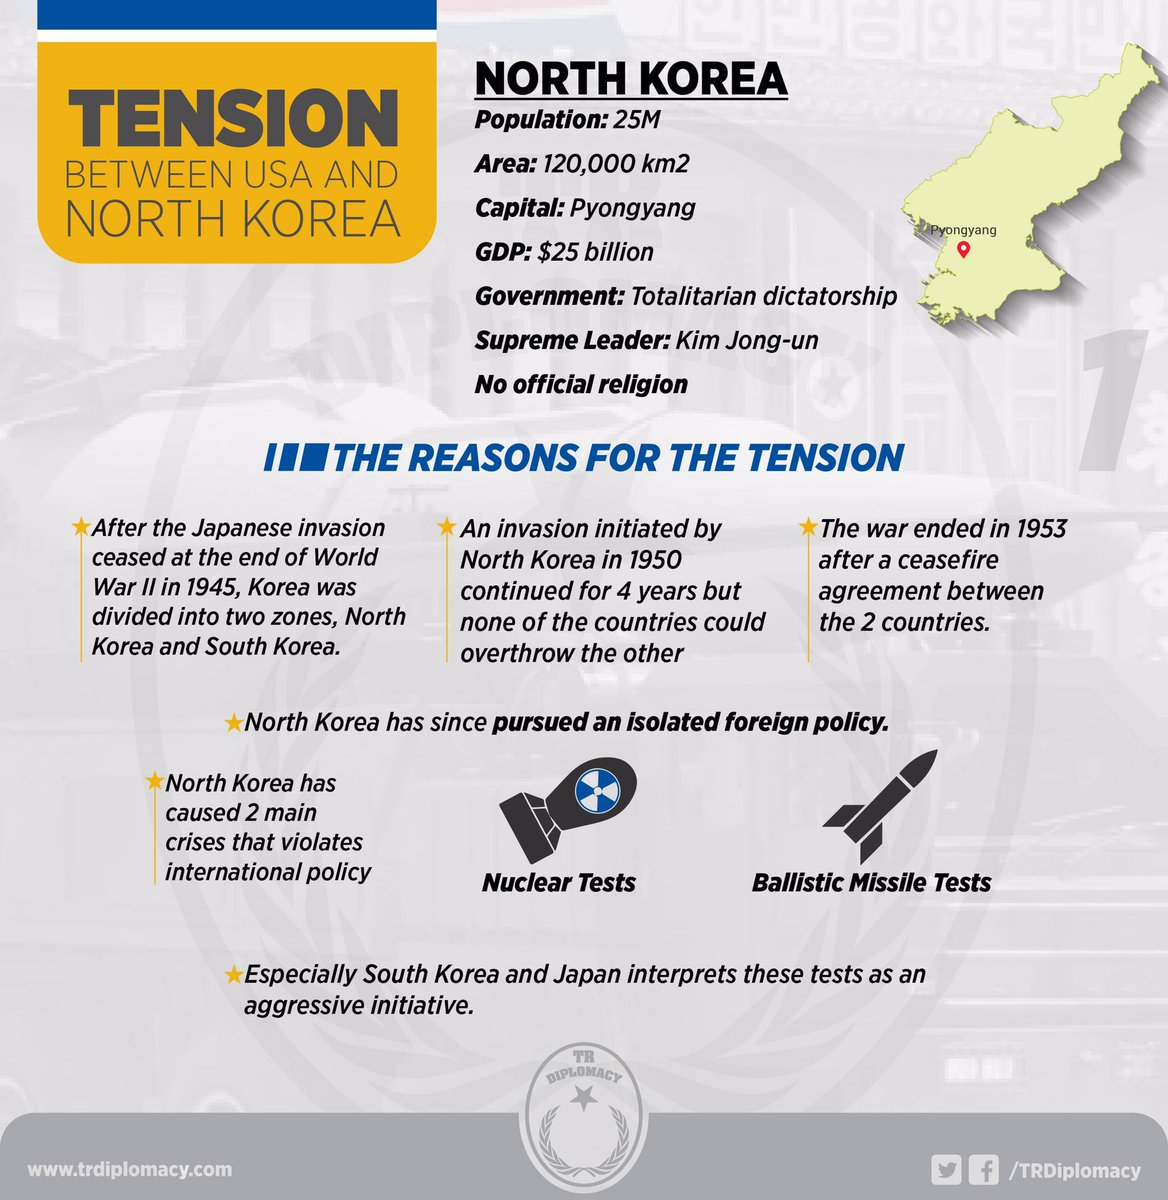 Tension between North Korea and USA